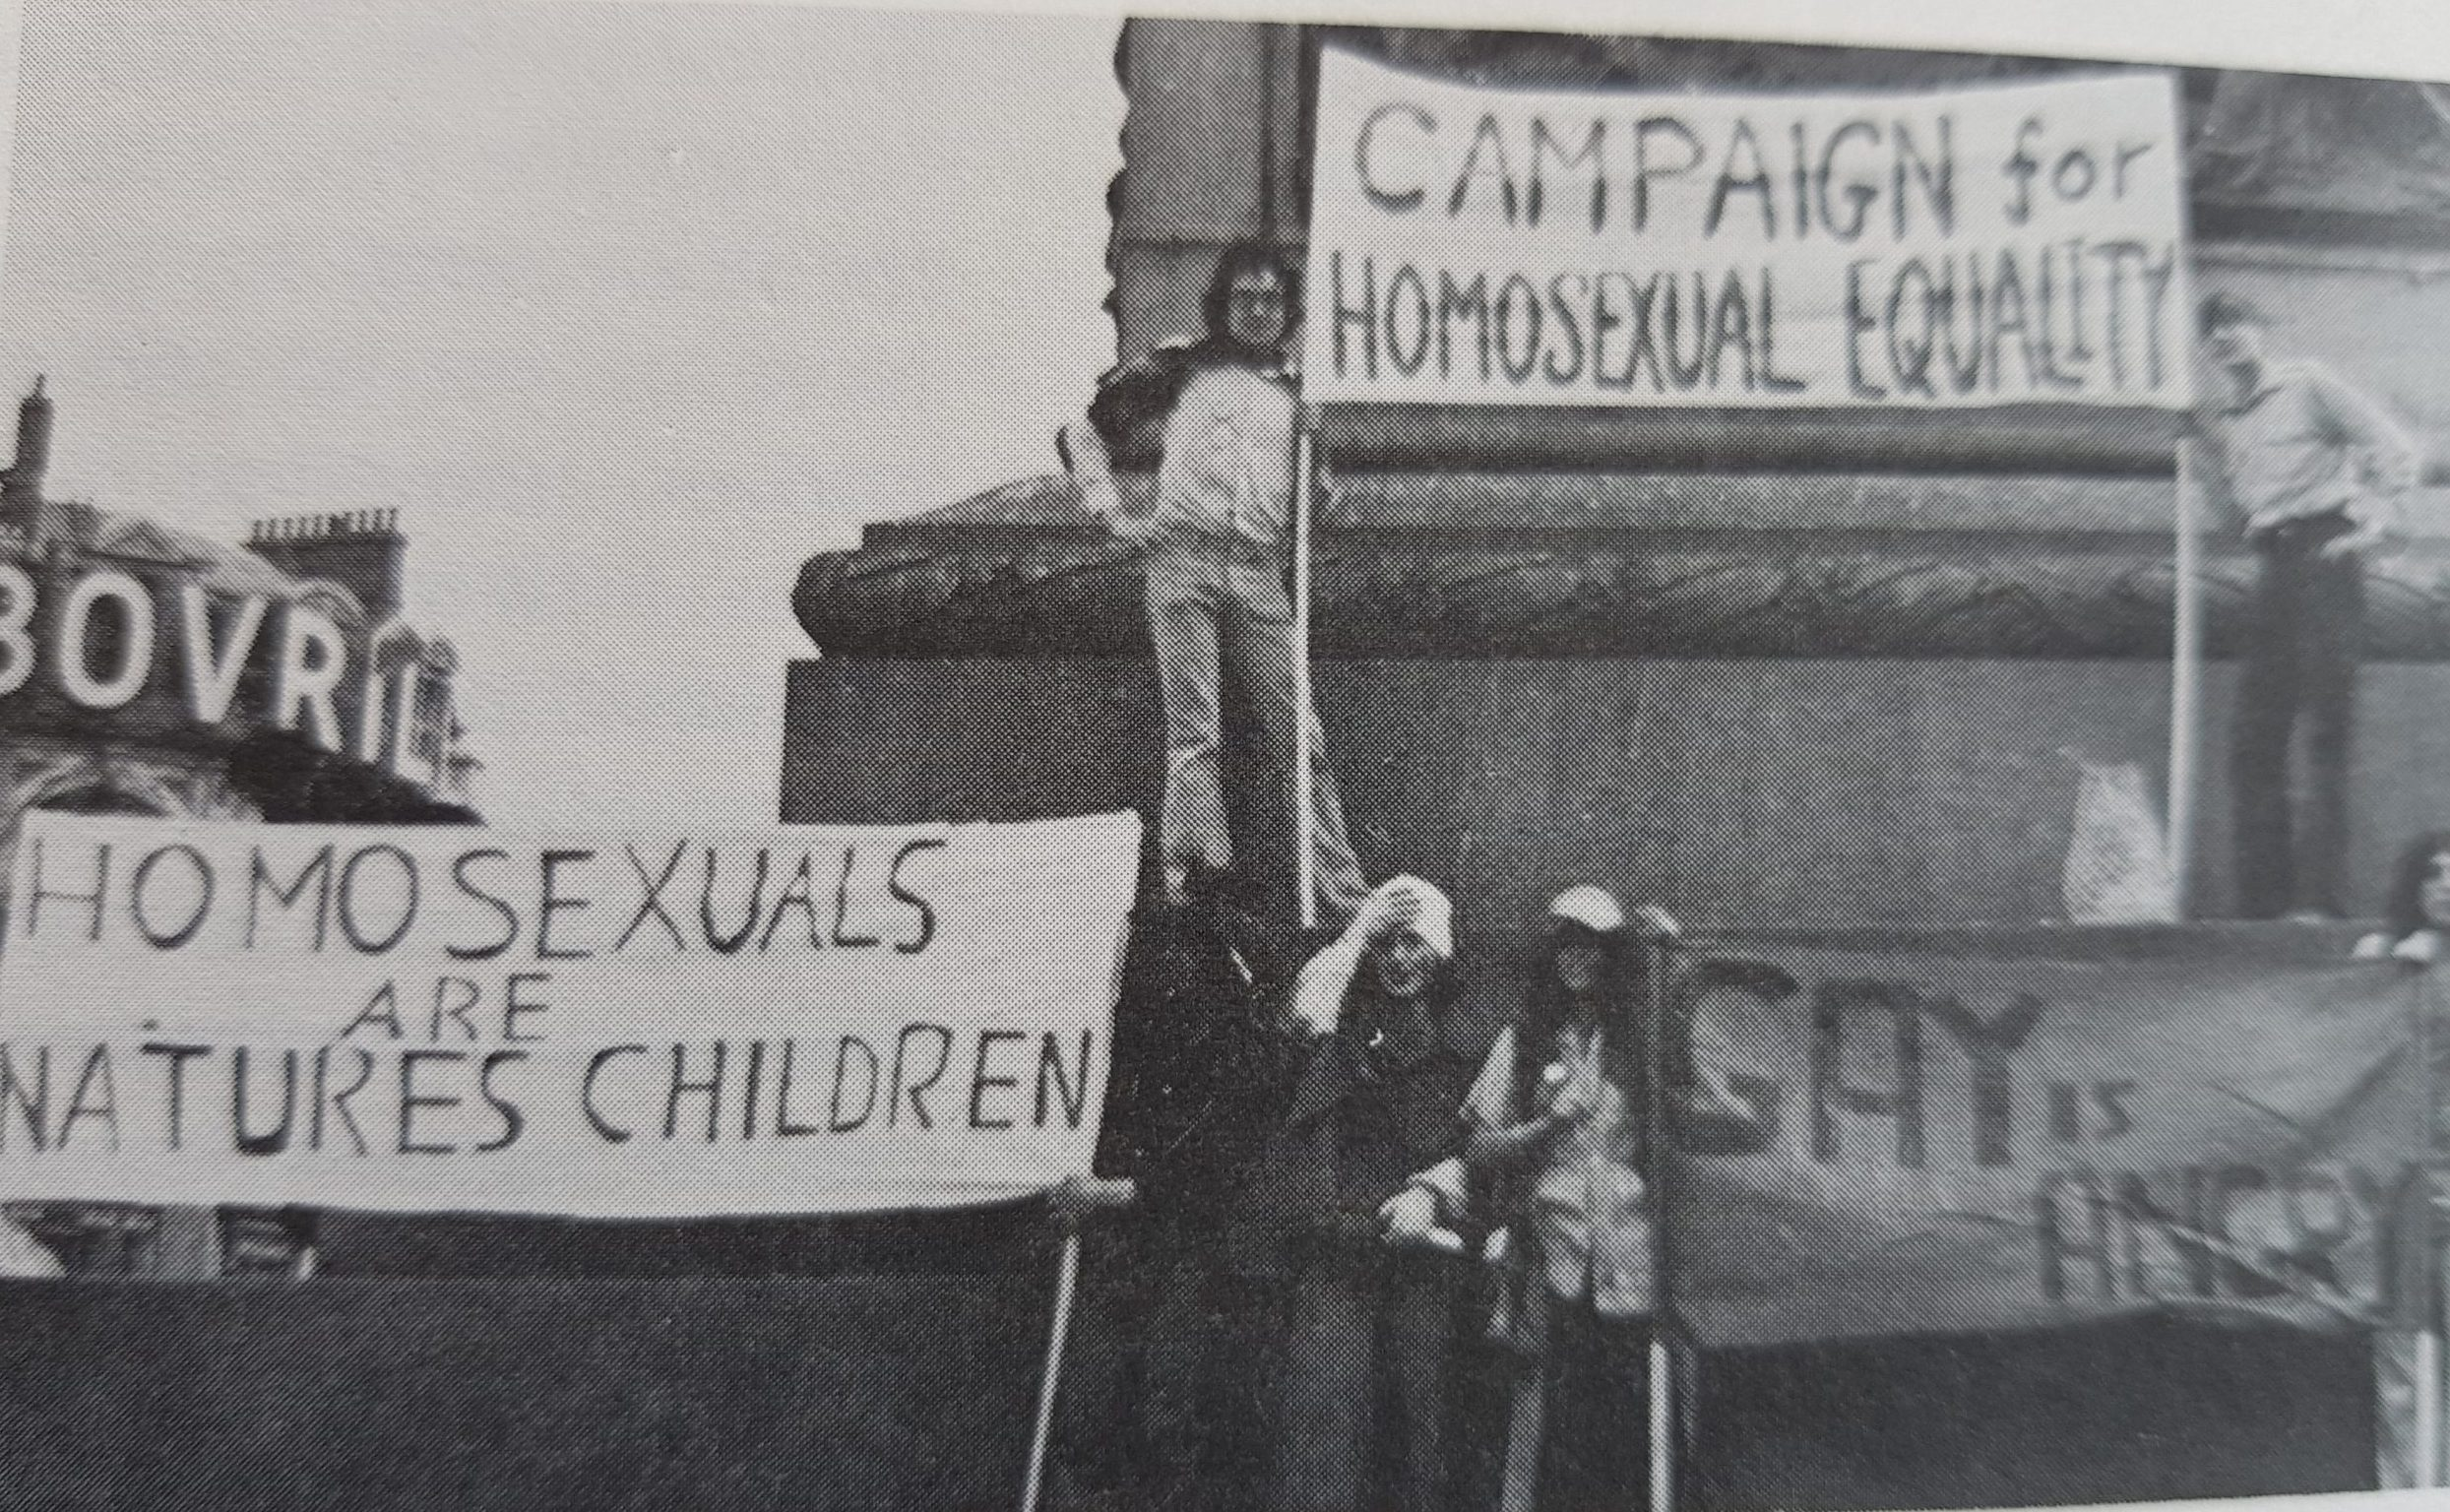 David Pollak holding a sign at an early Pride event in the United Kingdom, summer 1972.